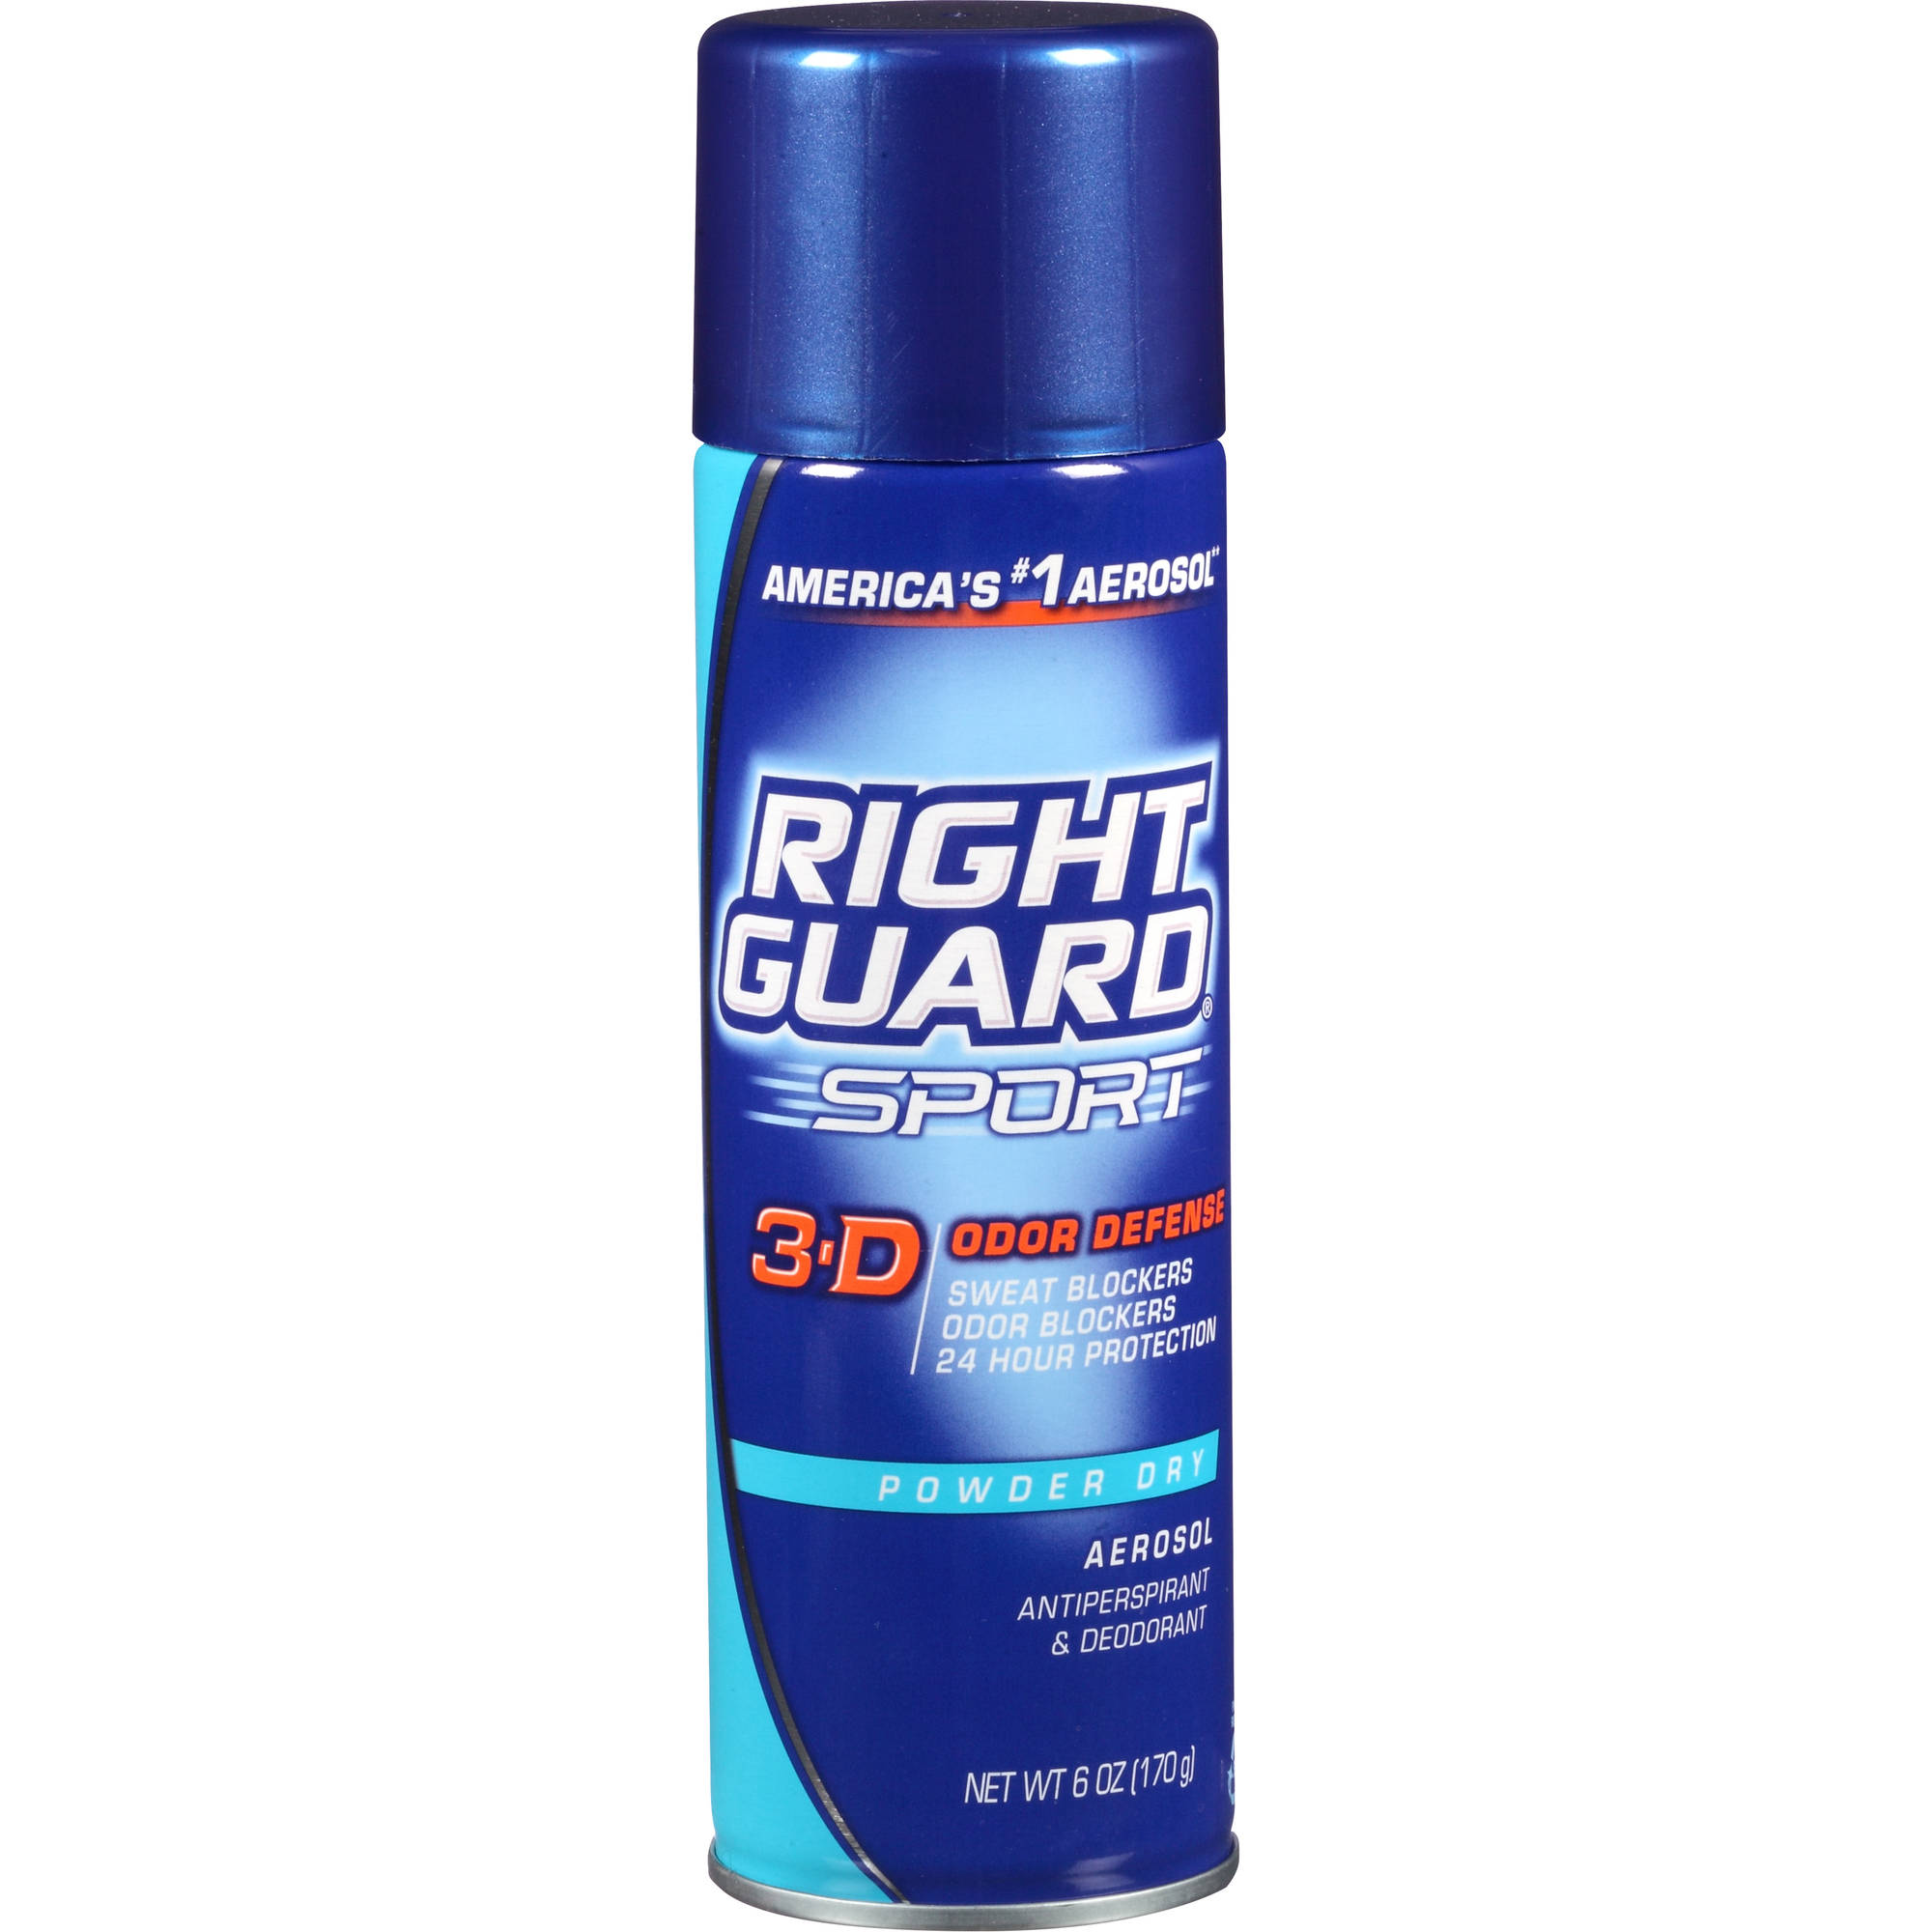 Right Guard Powder Dry Anti-Perspirant Deodorant, 6 oz